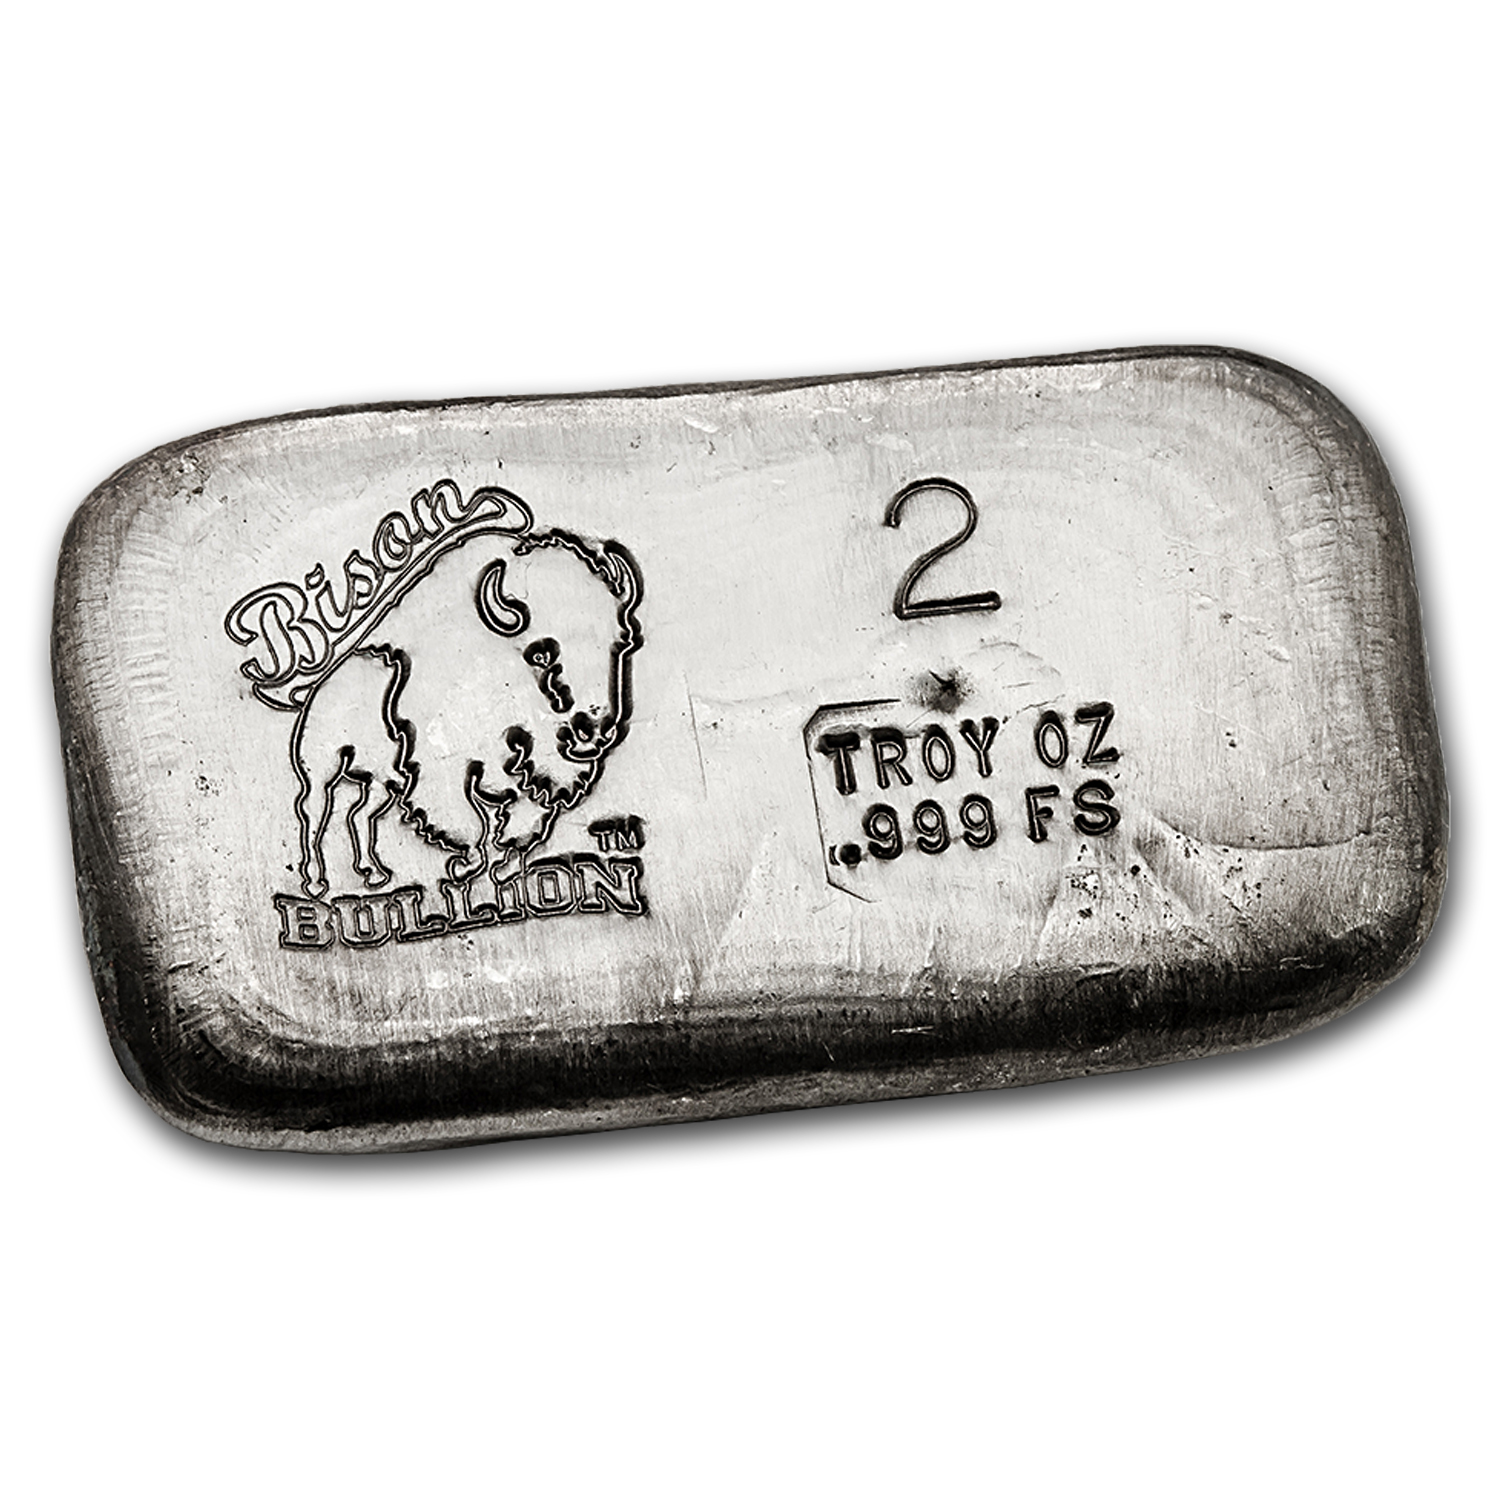 2 oz Silver Bar - Bison Bullion